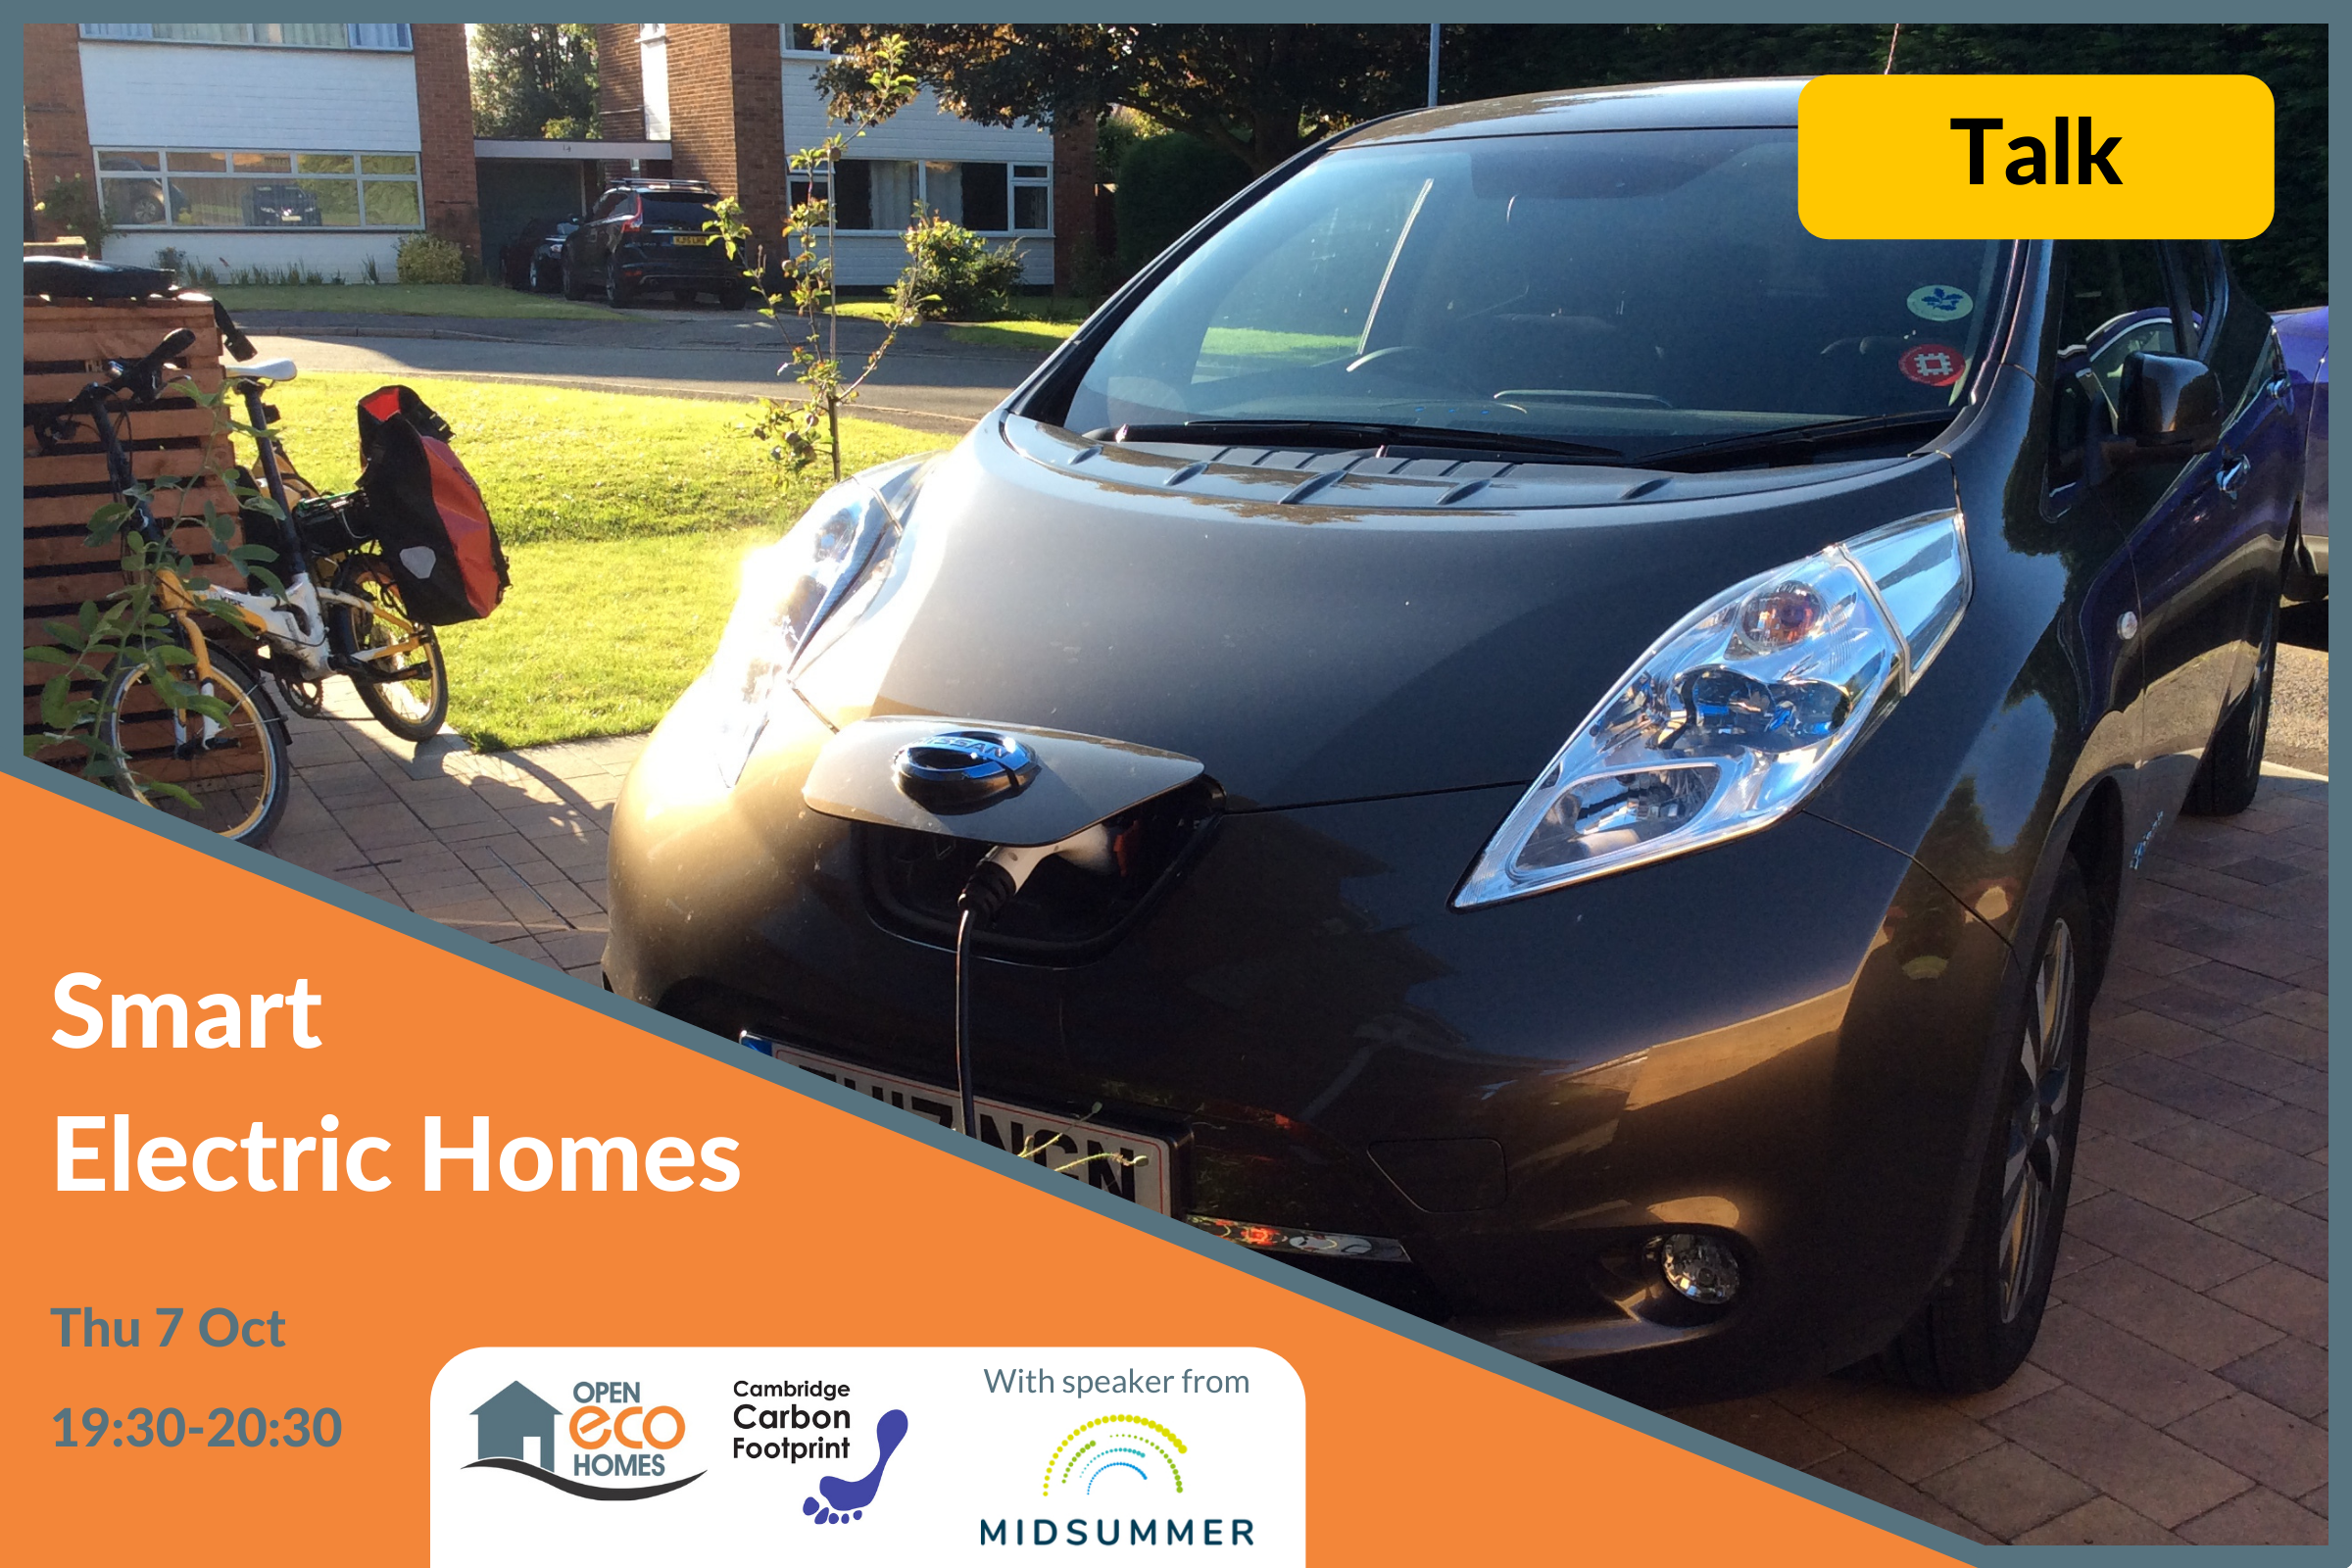 Smart Electric Homes